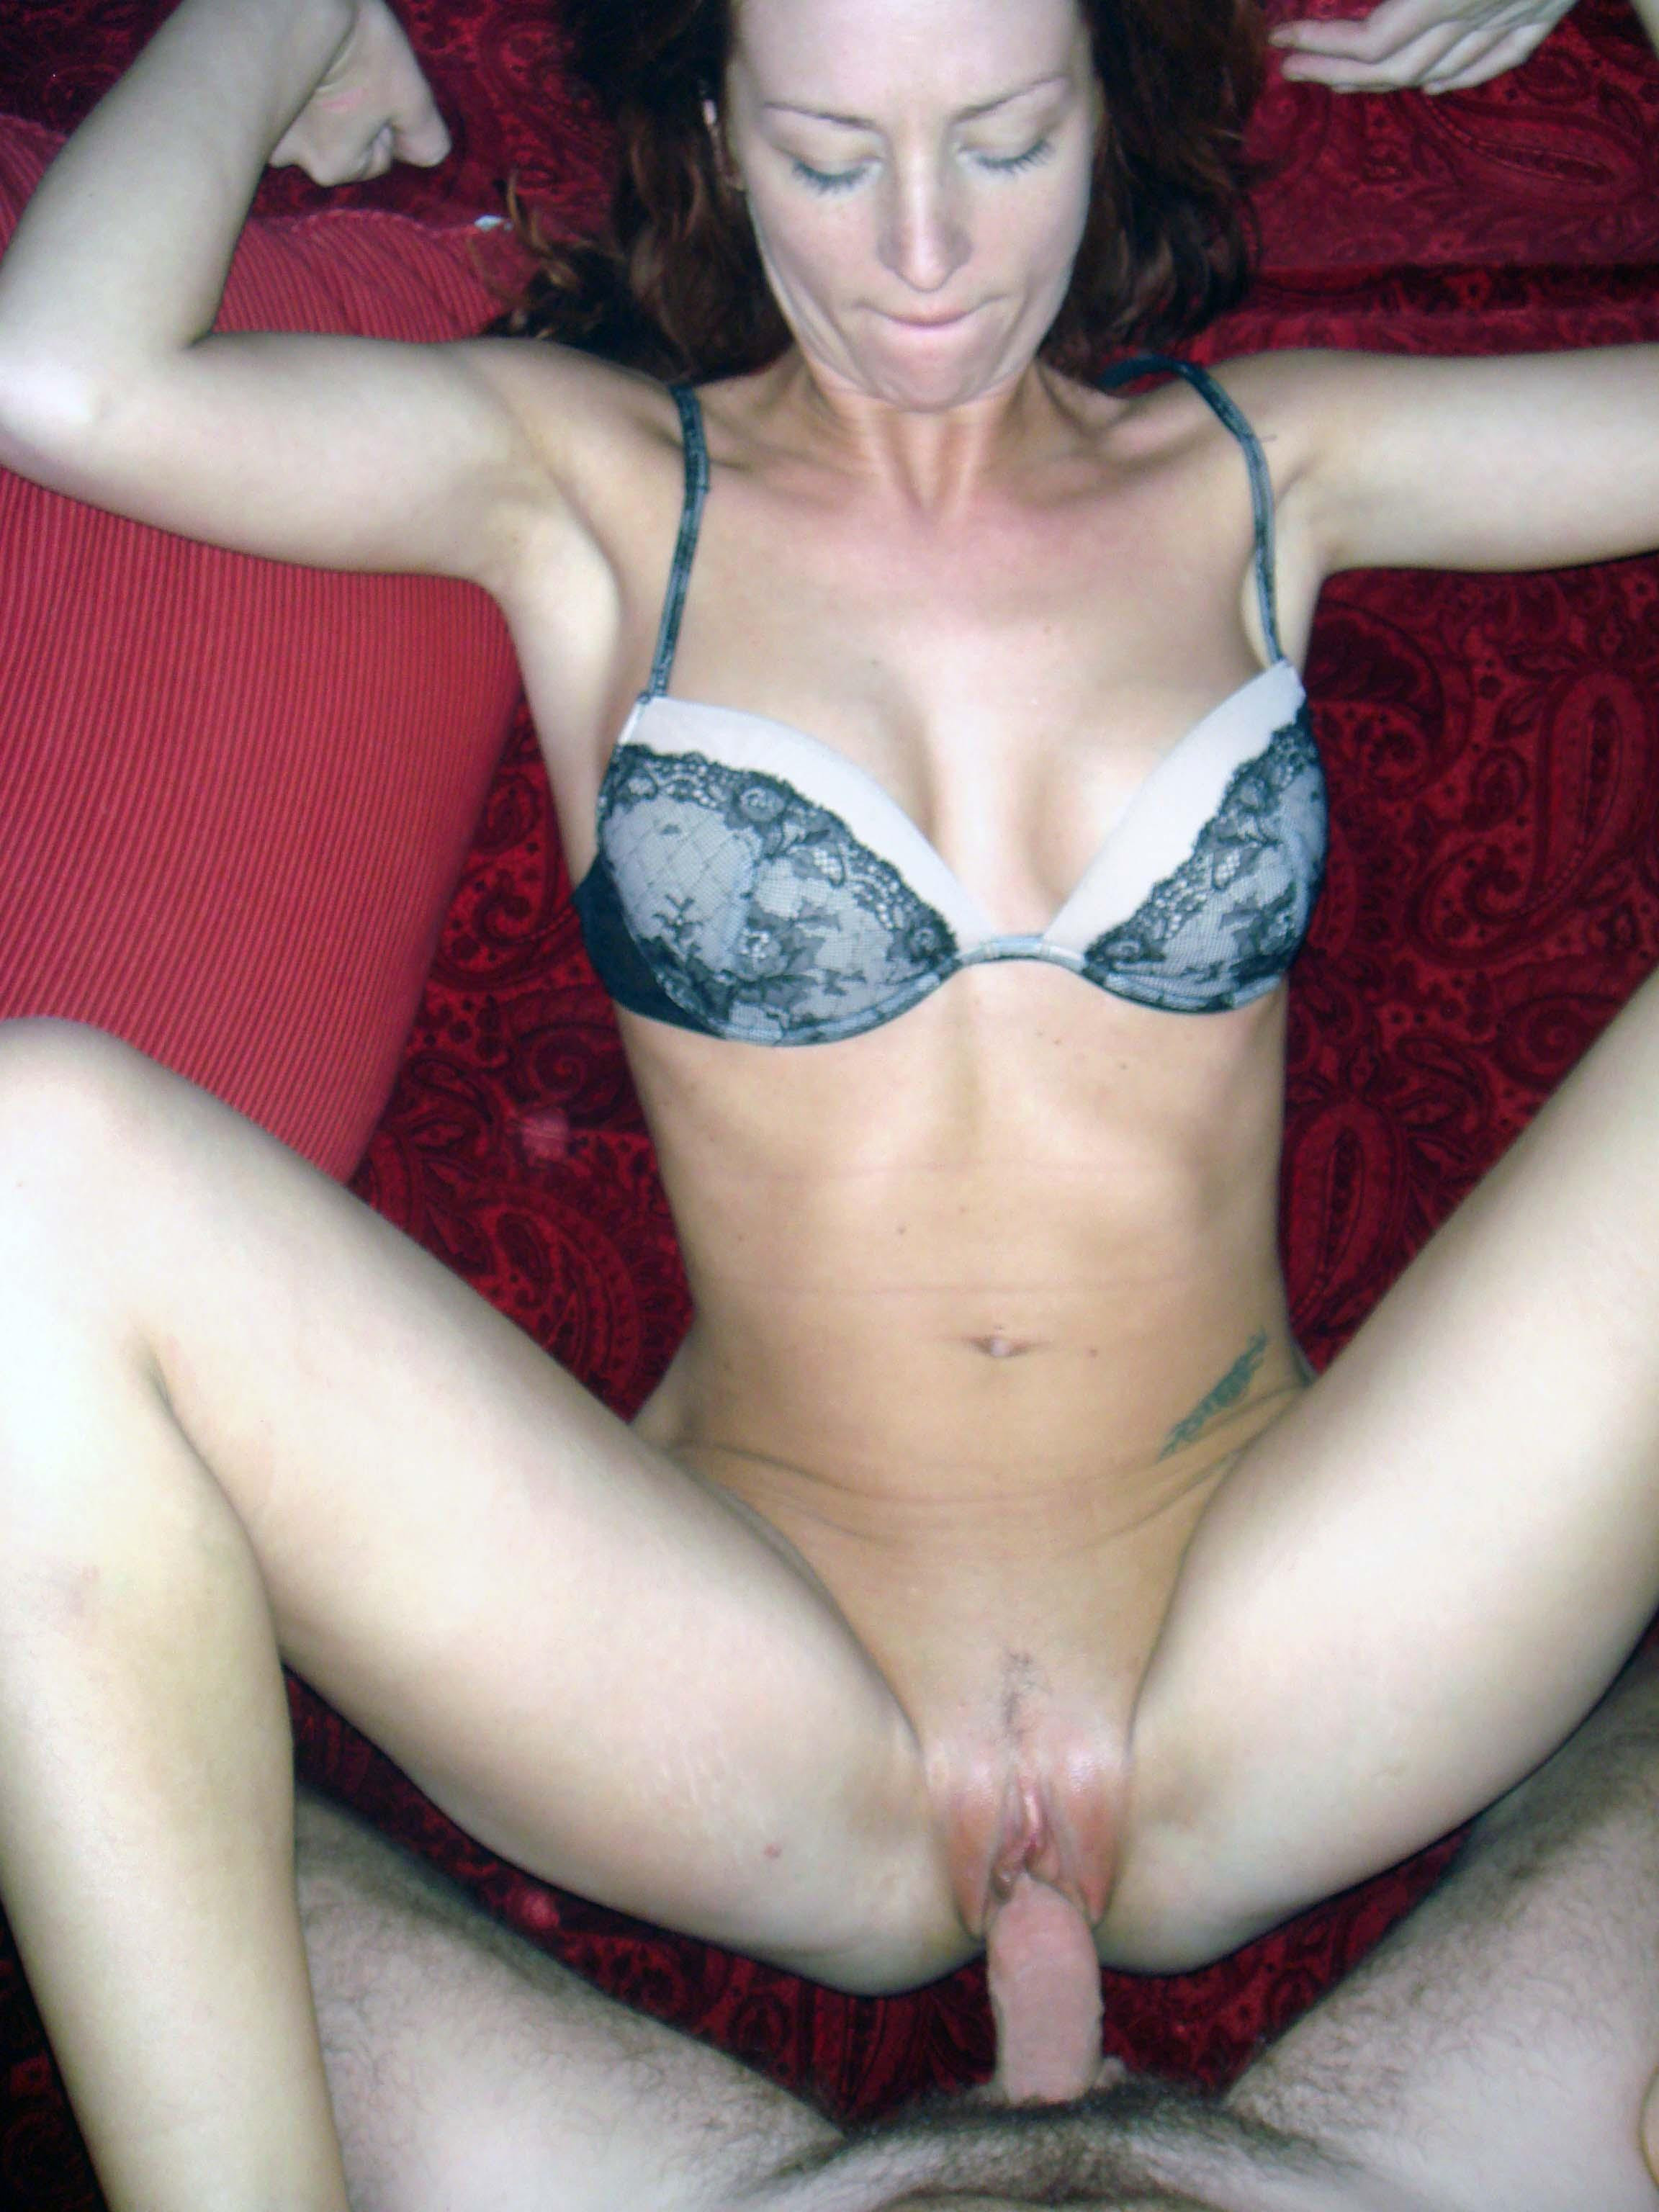 Redhead stretched on the bed fingering soft